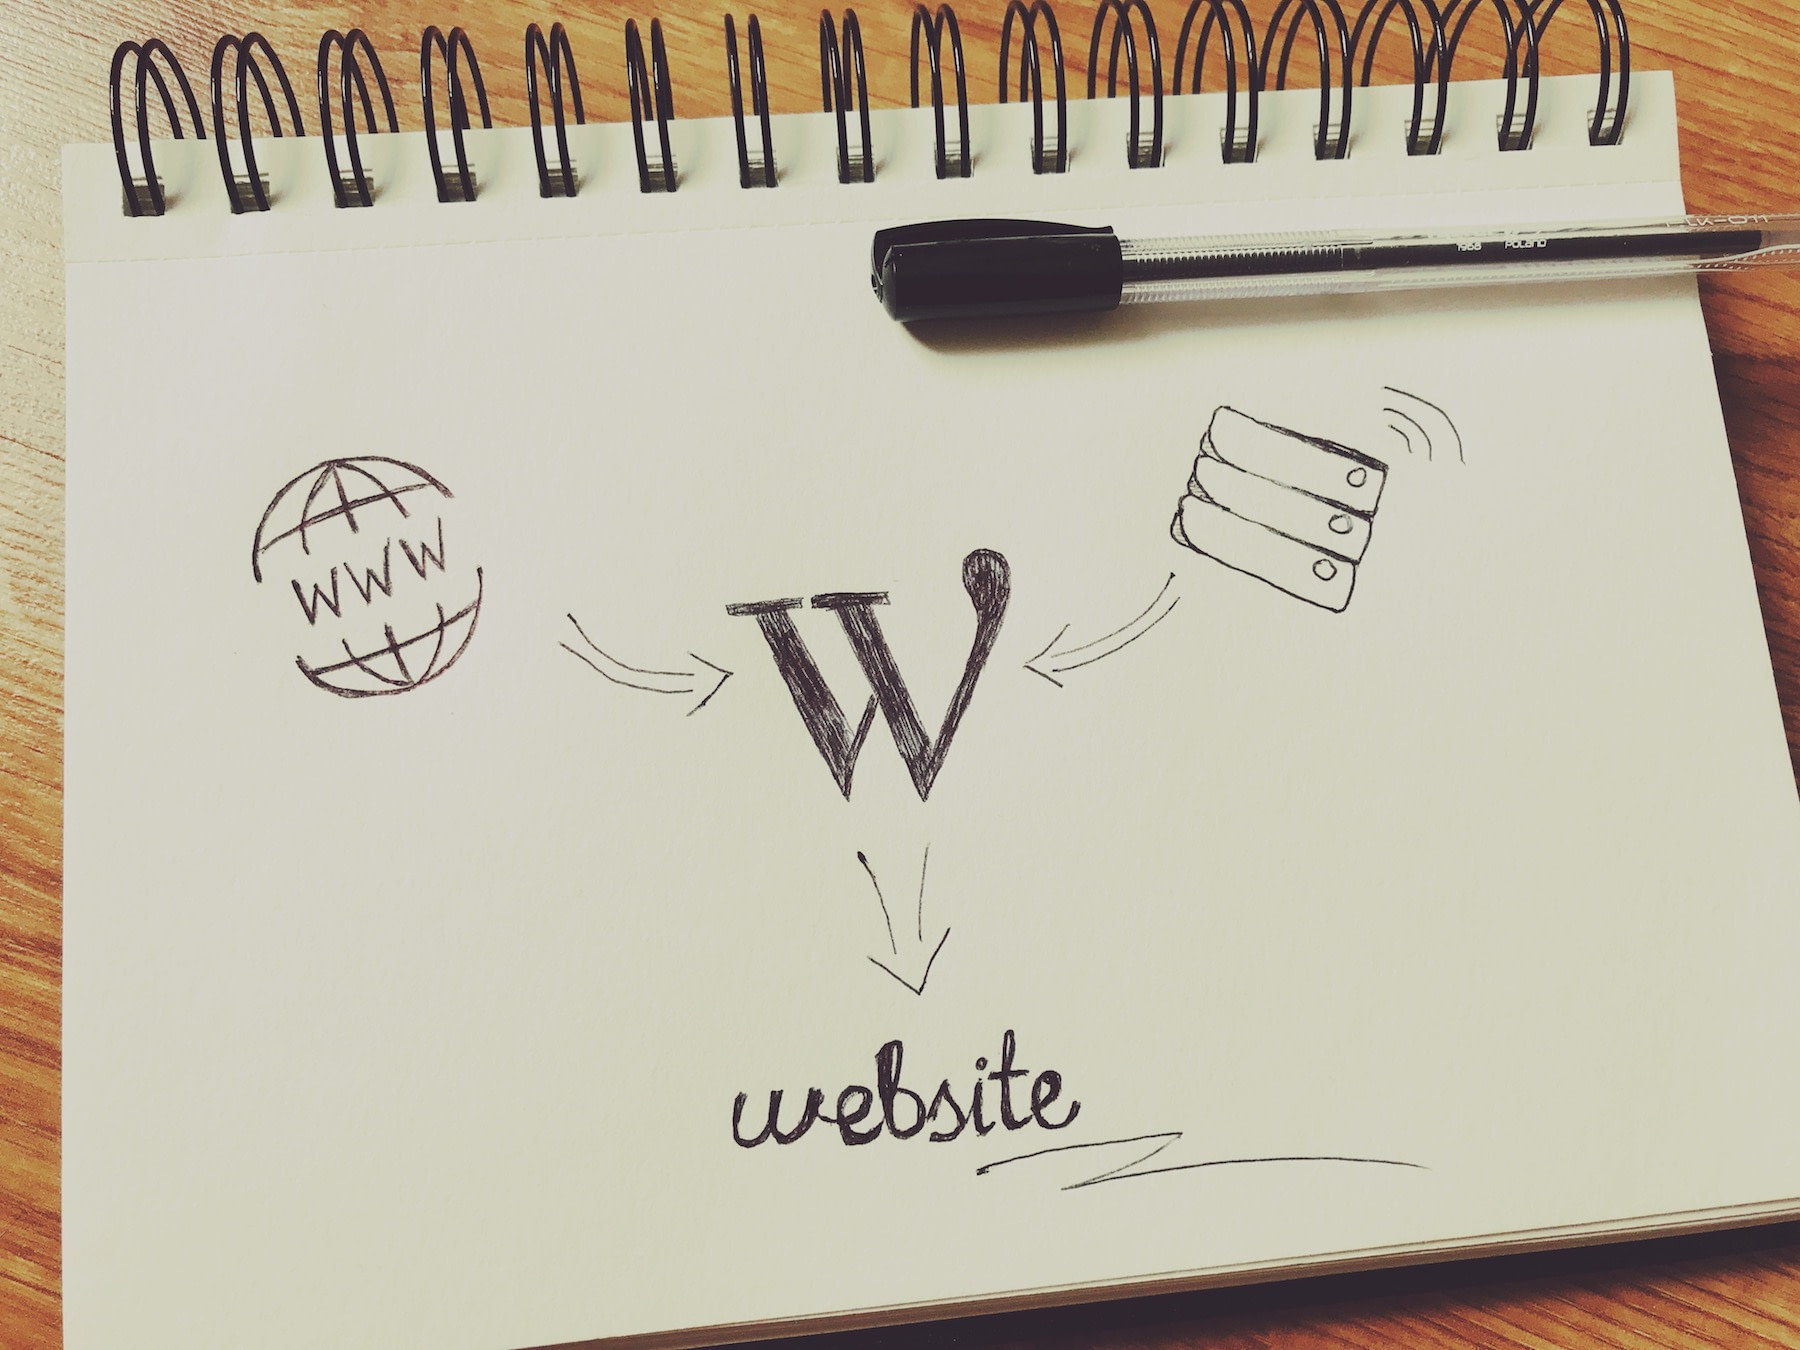 How to set up a blog: www + host + WordPress